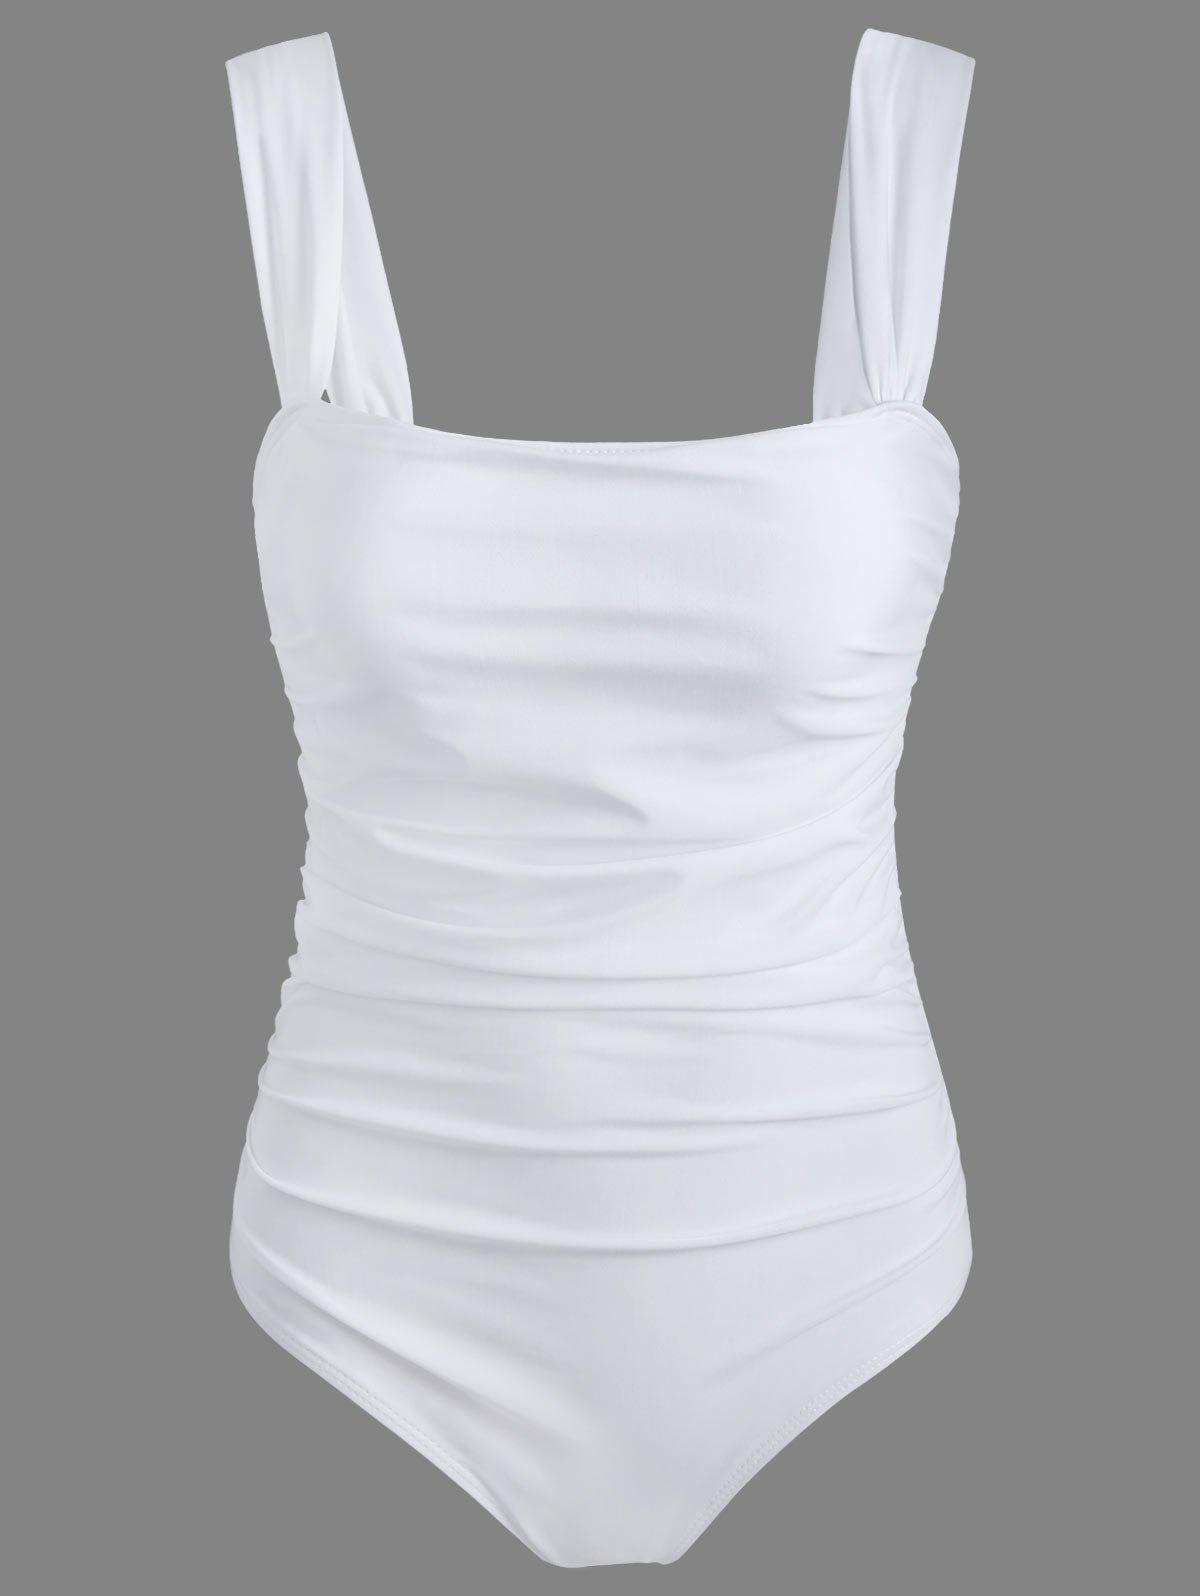 One Piece High Cut Maillots de bain - Blanc L